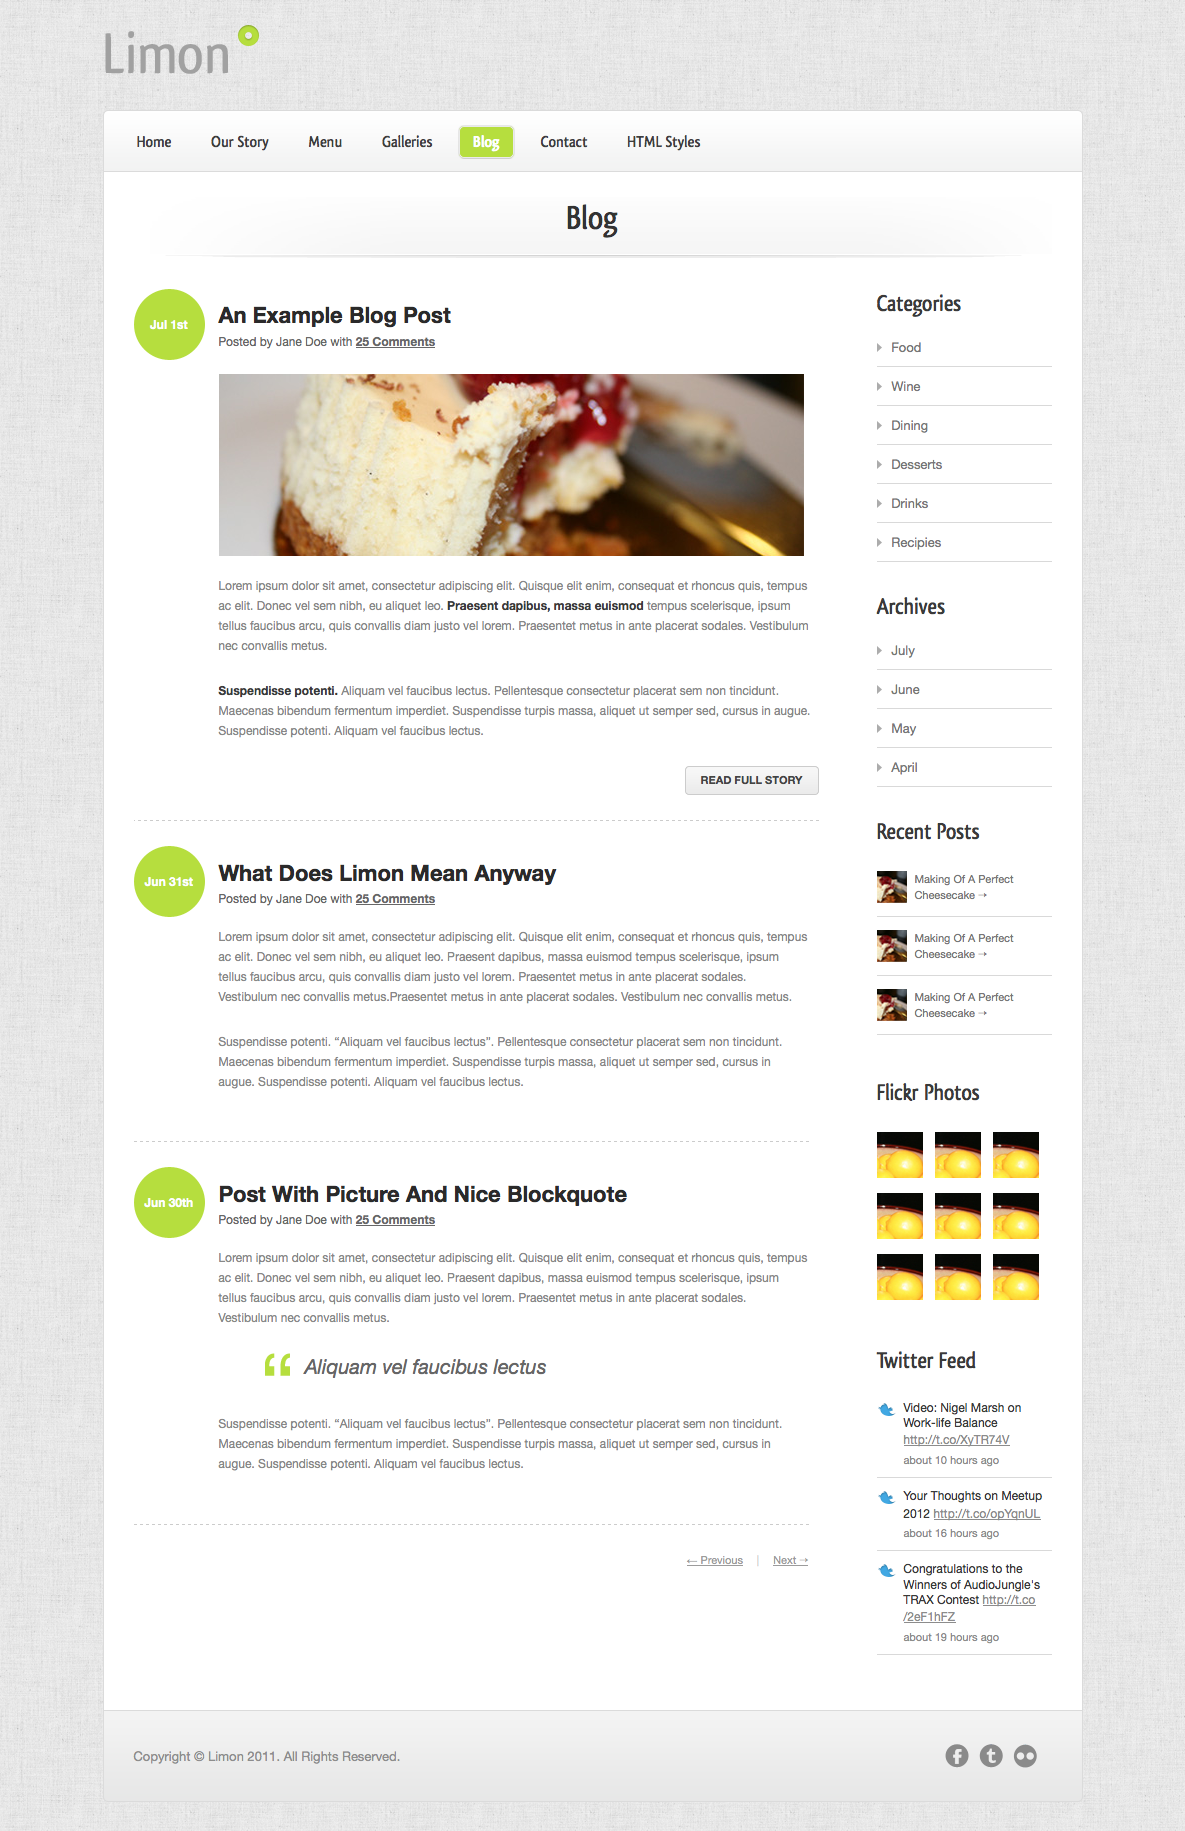 Limon - A Restaurant and Spa Theme - Blog - Beautifully designed blog post layouts with a feature-packed sidebar.